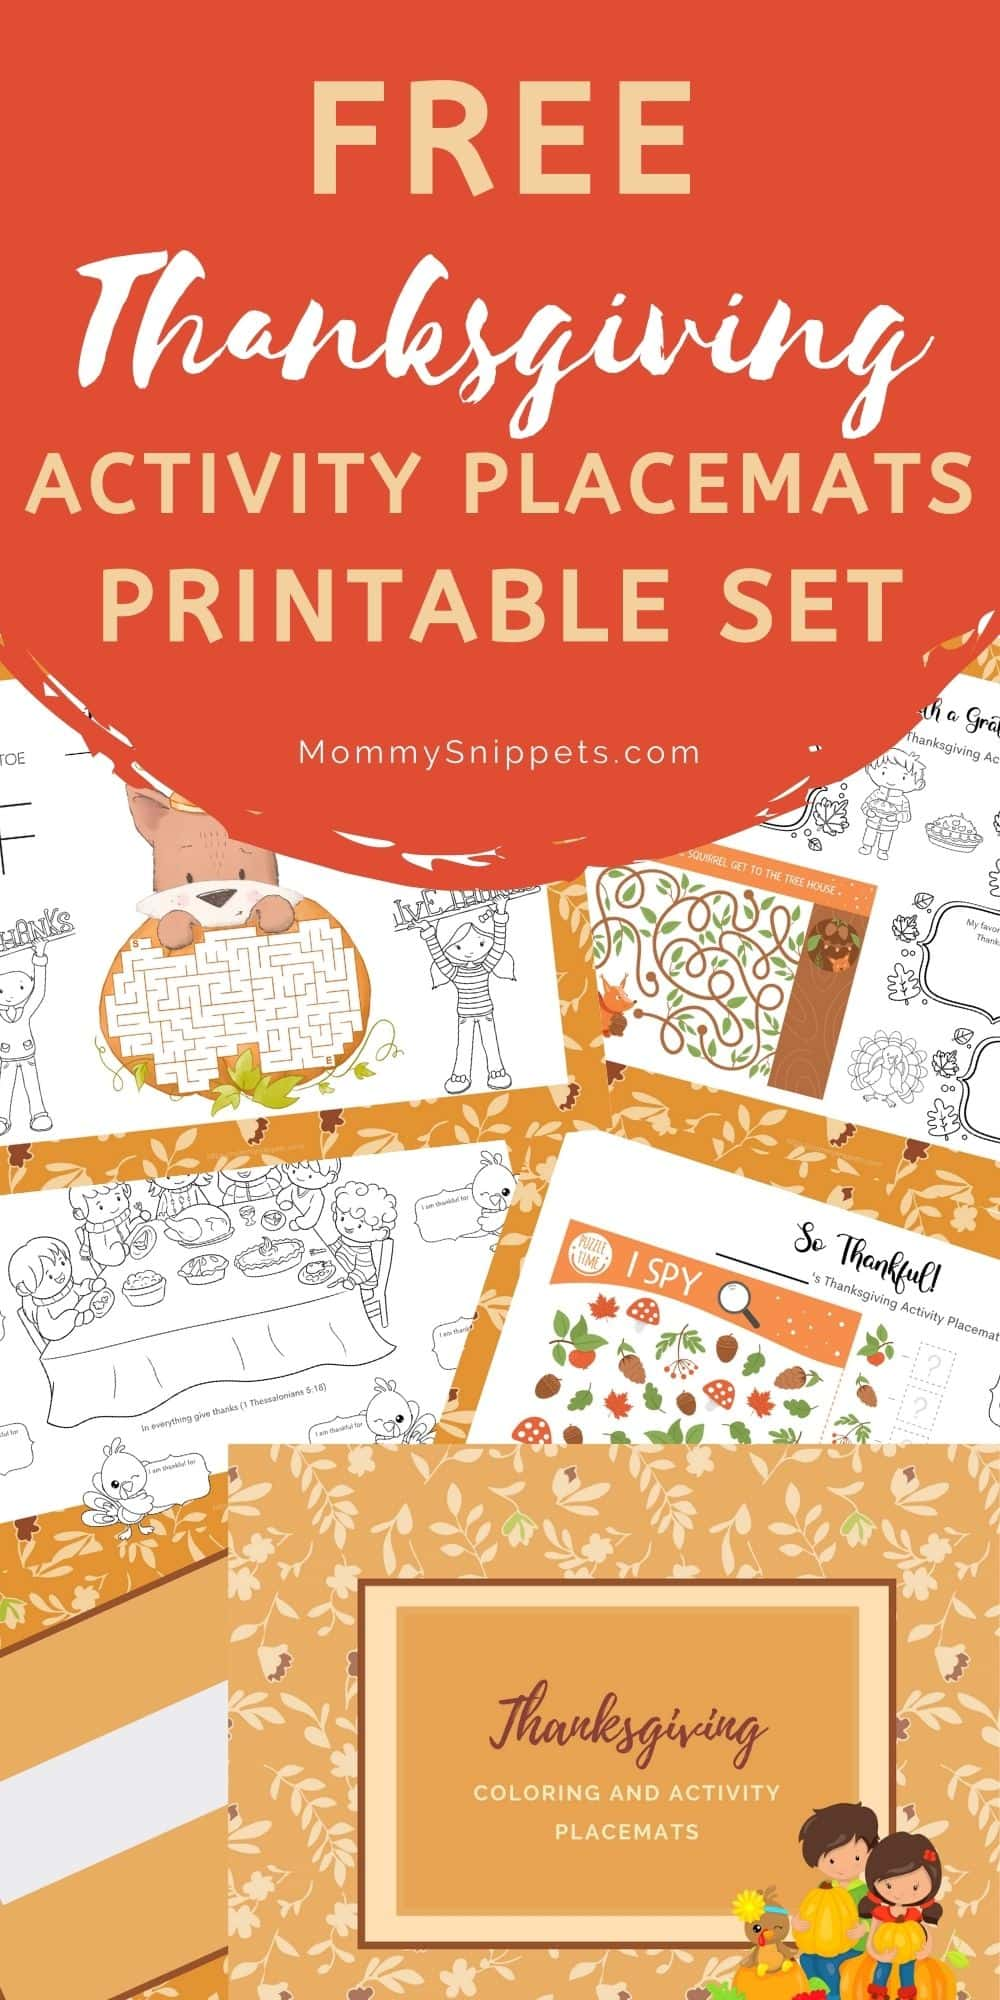 Free Thanksgiving Activity Placemats Printable- MommySnippets.com